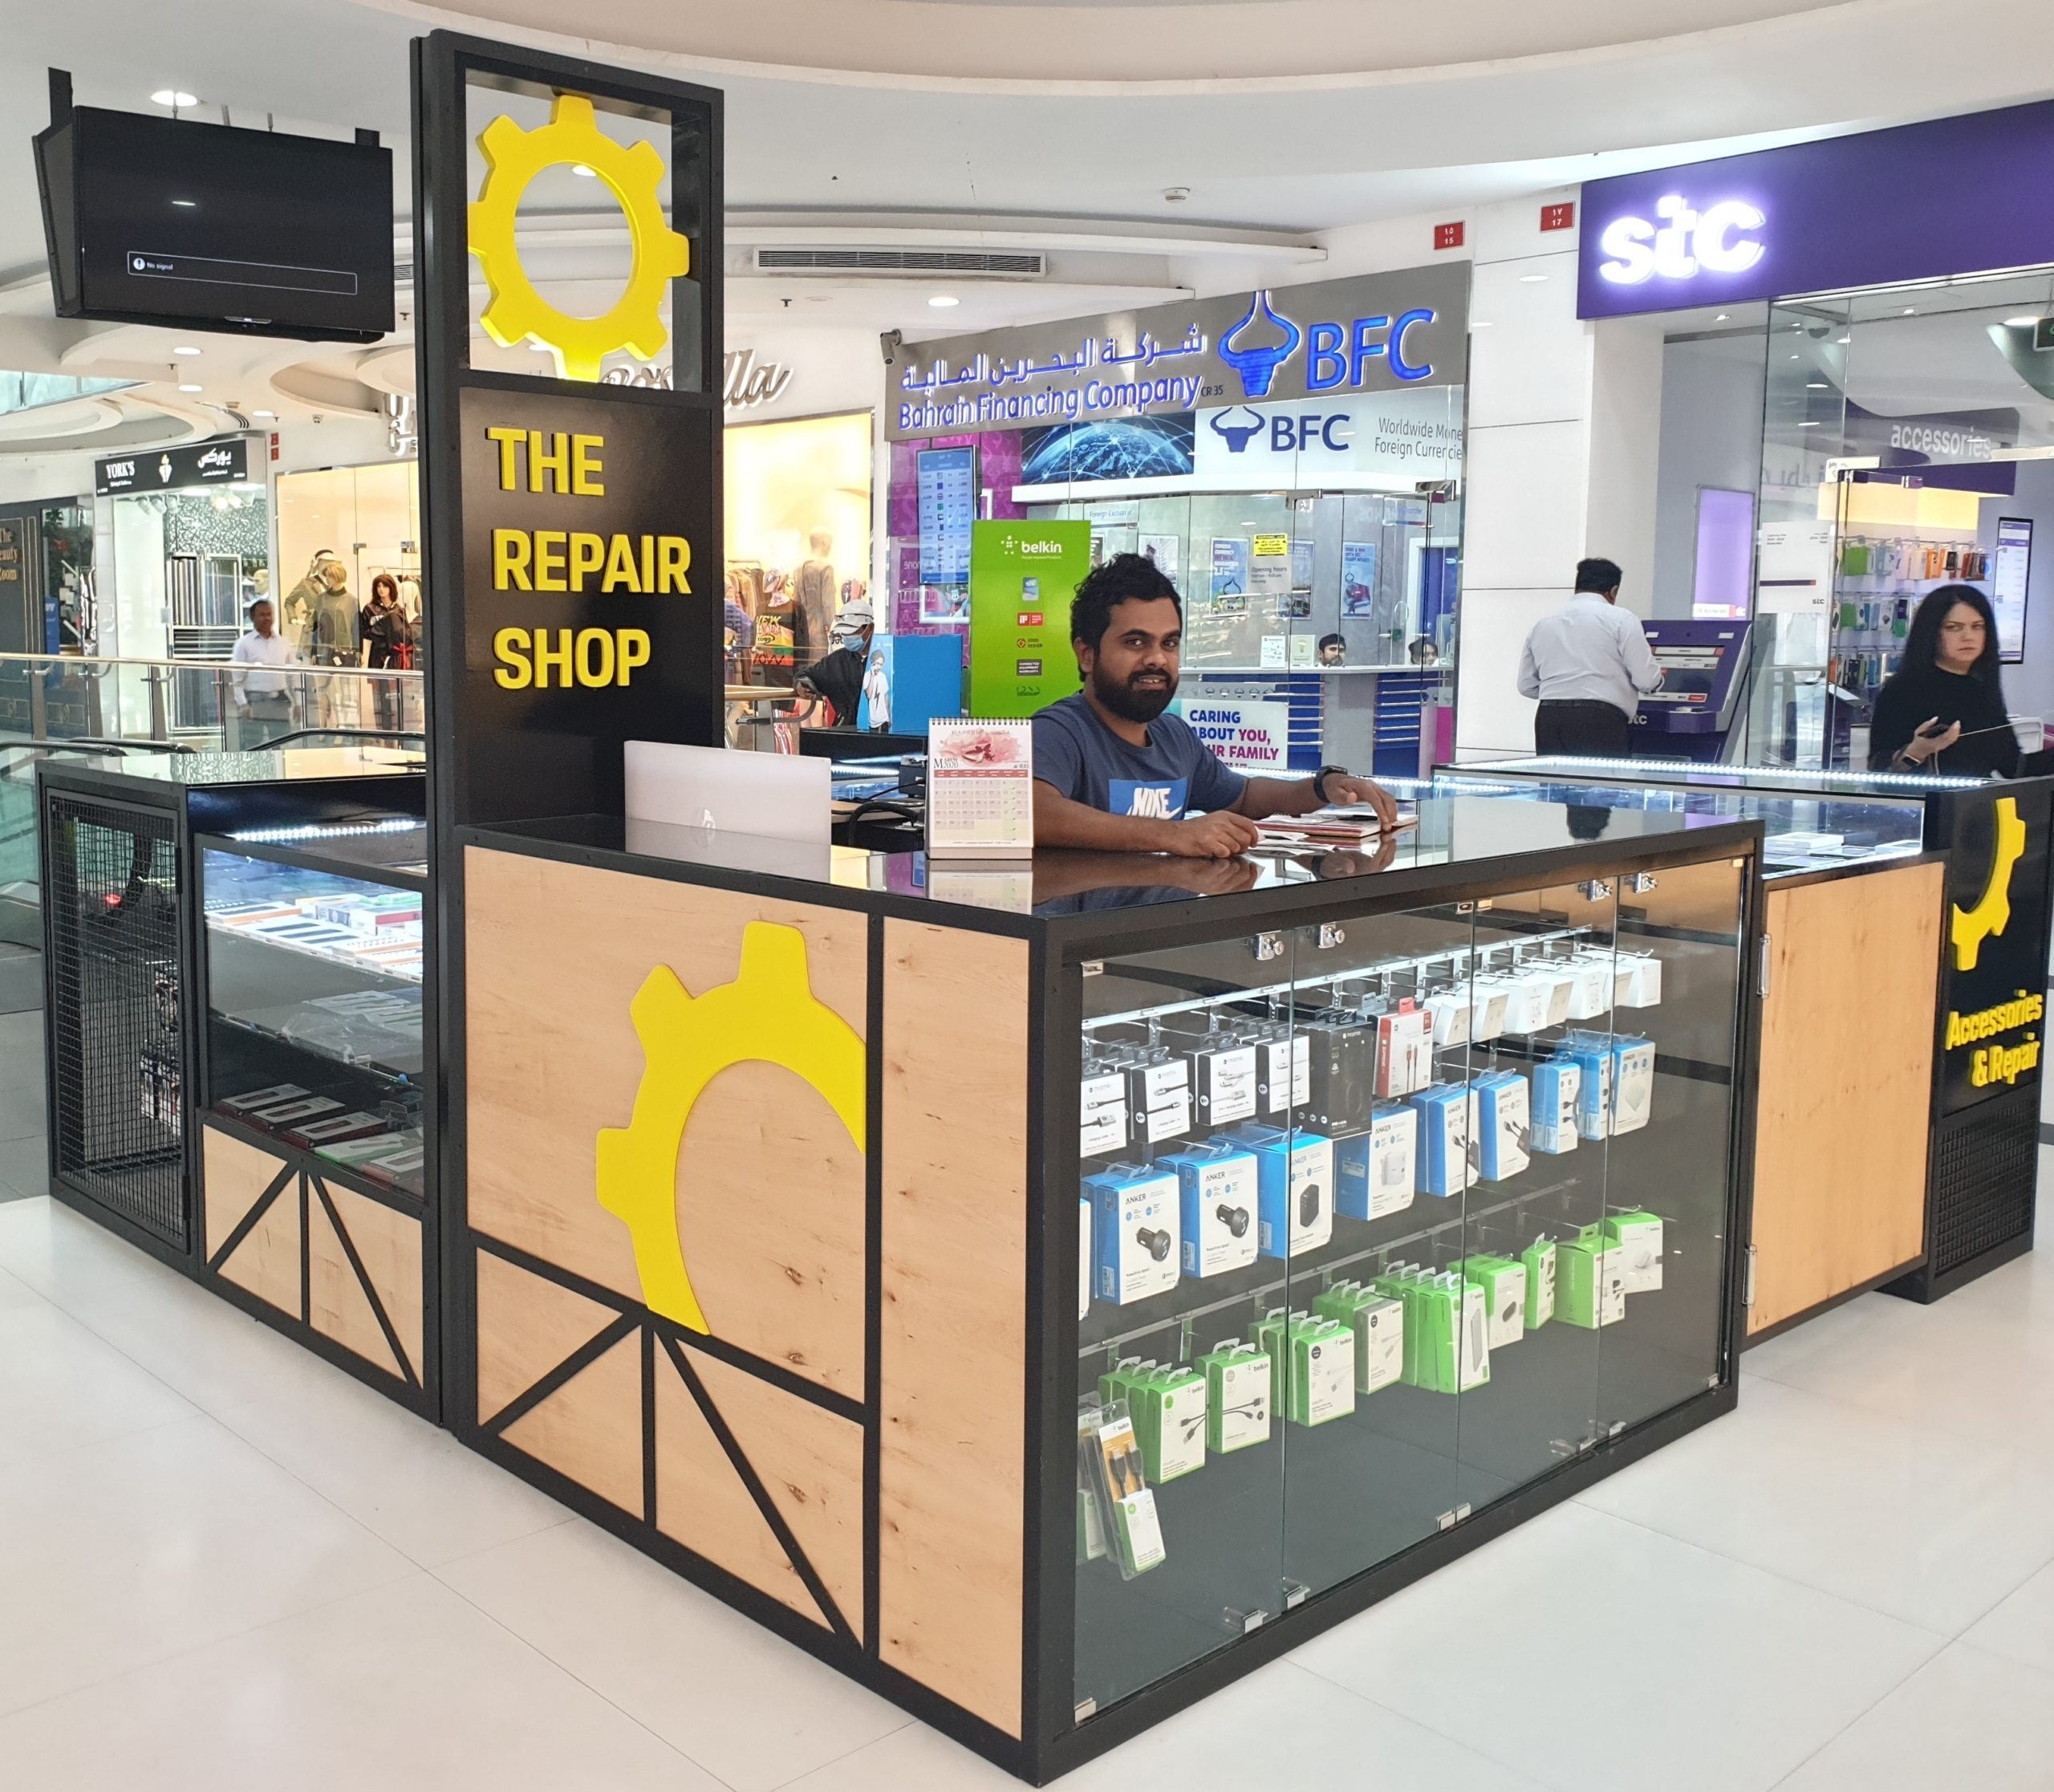 The Repair Shop Kiosk - Saar Mall